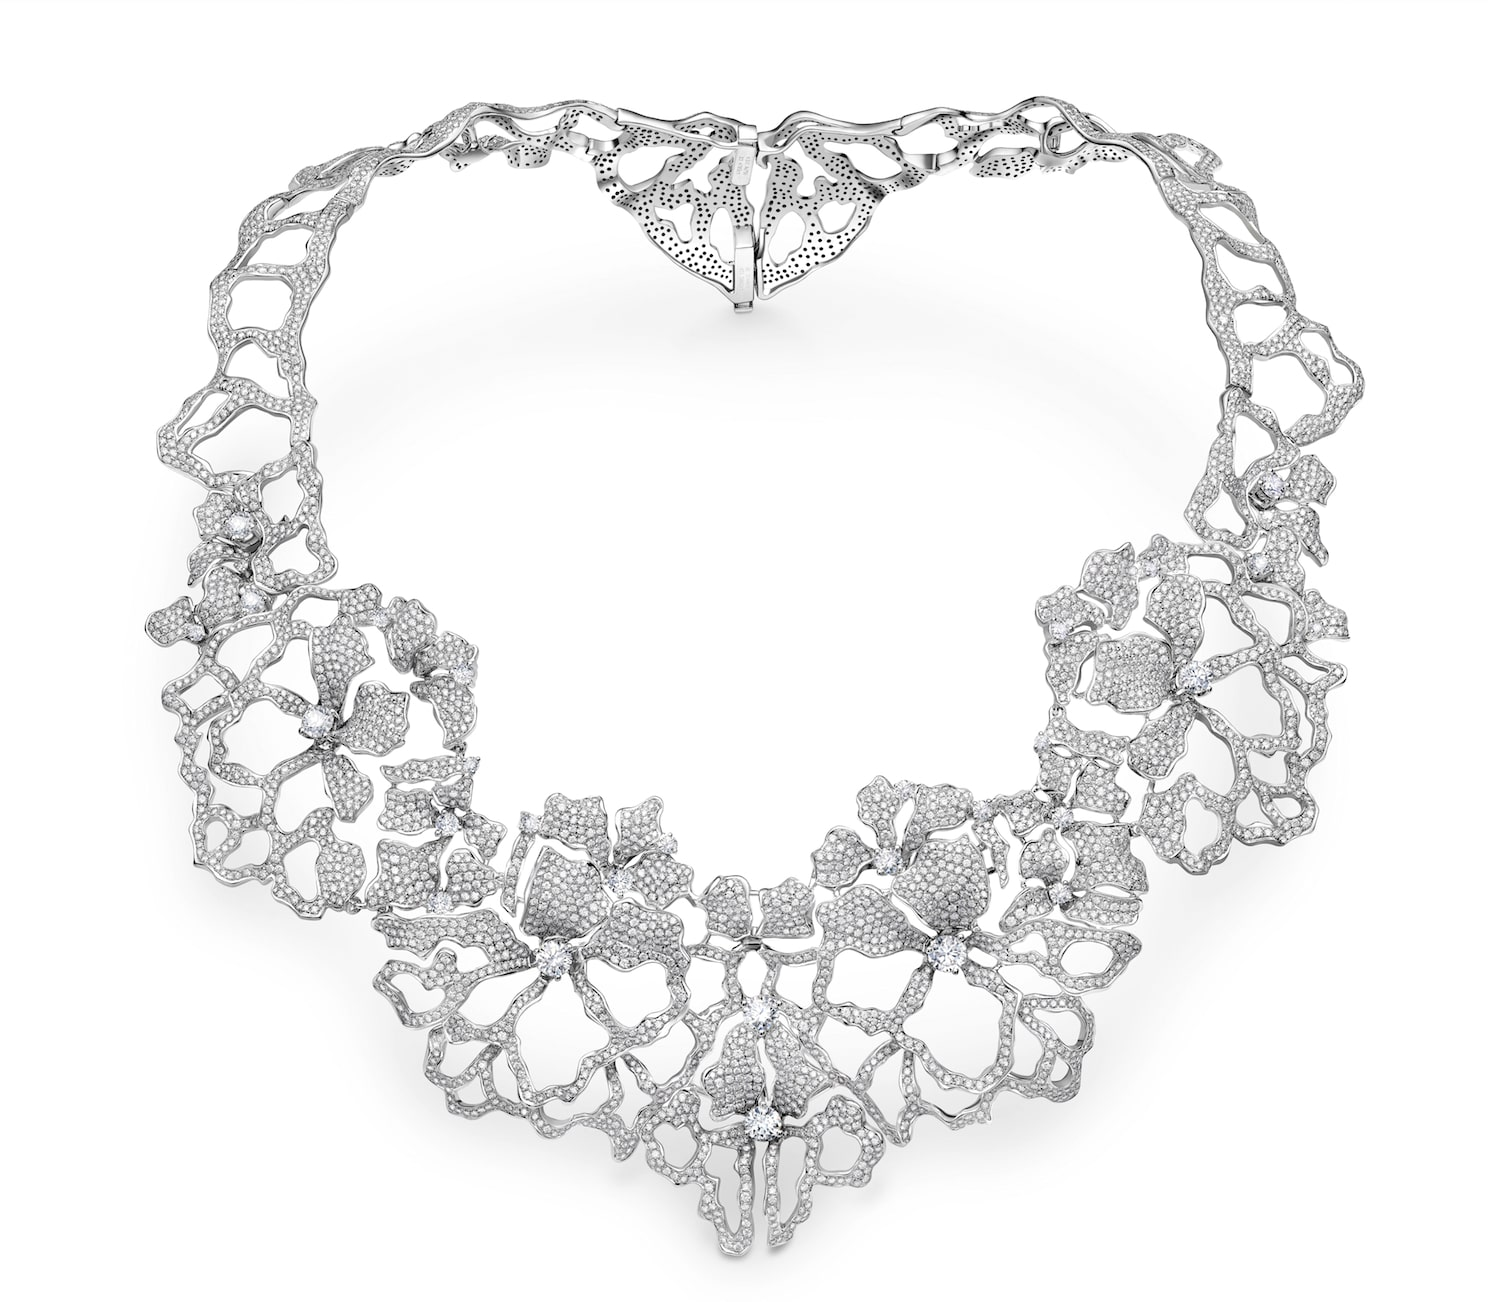 Exquisite-Beauty-Necklace.-Sarah-Ho-for-Kimberlite